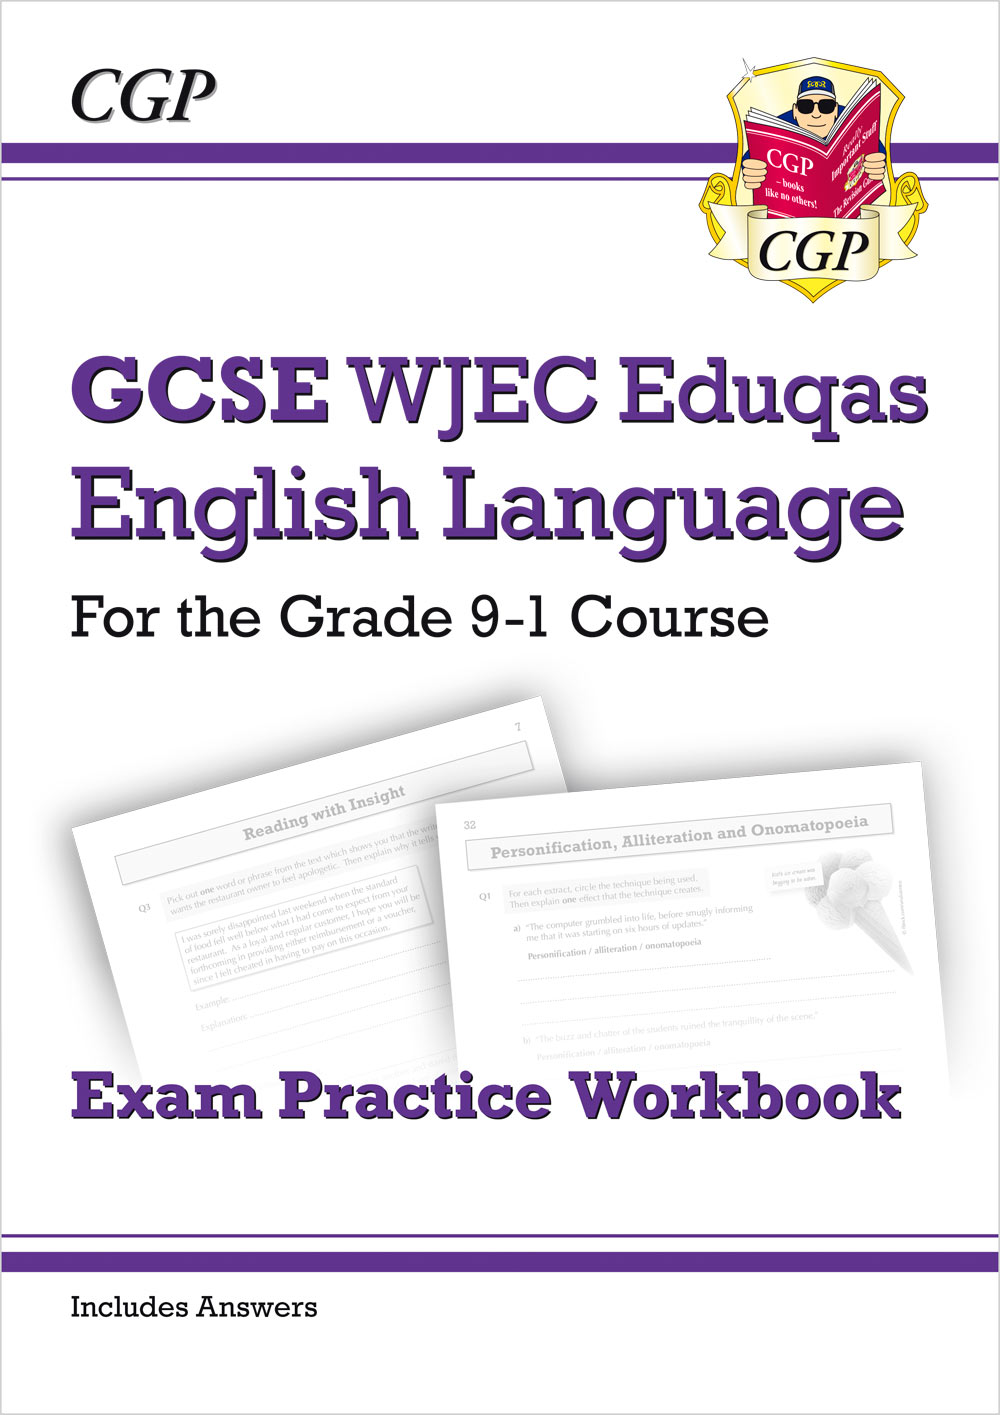 ENWW41 - GCSE English Language WJEC Eduqas Workbook - for the Grade 9-1 Course (includes Answers)